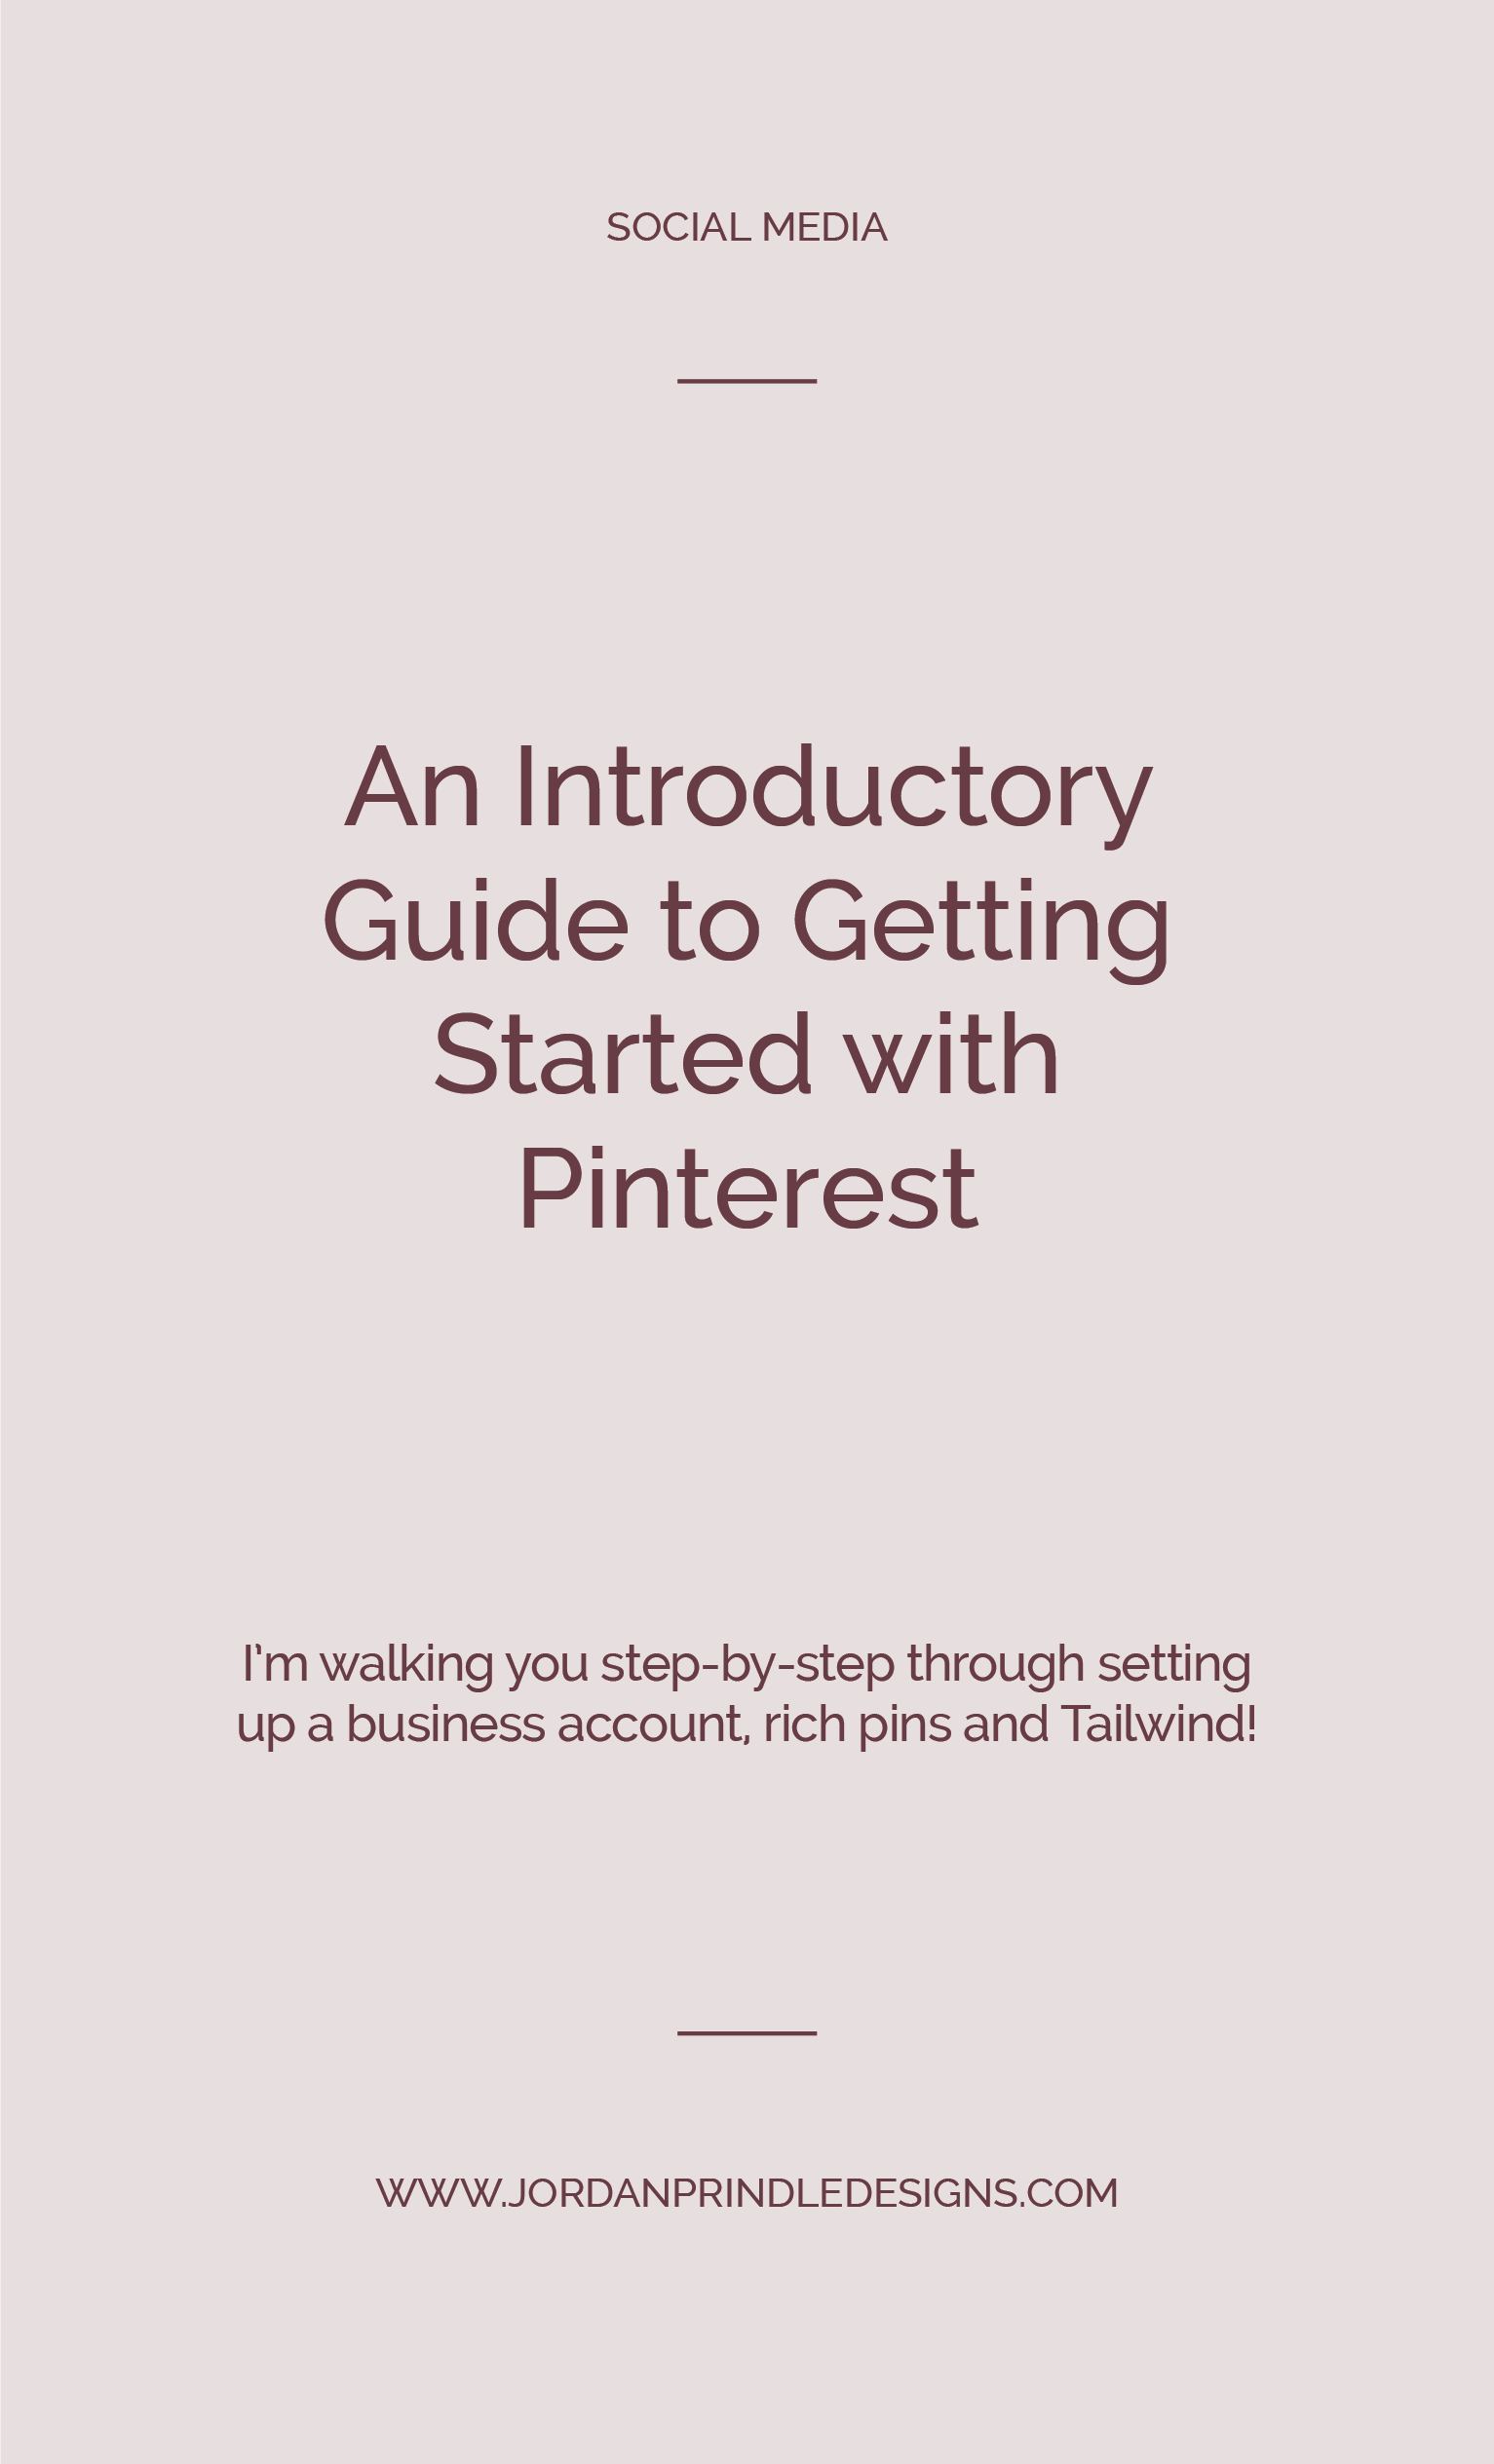 An Introductory Guide to Getting Started with Pinterest | I walk you through setting up your account, enabling rich pins and utilizing tailwind on www.jordanprindledesigns.com #socialmediatips #businesstips #branddesignertips